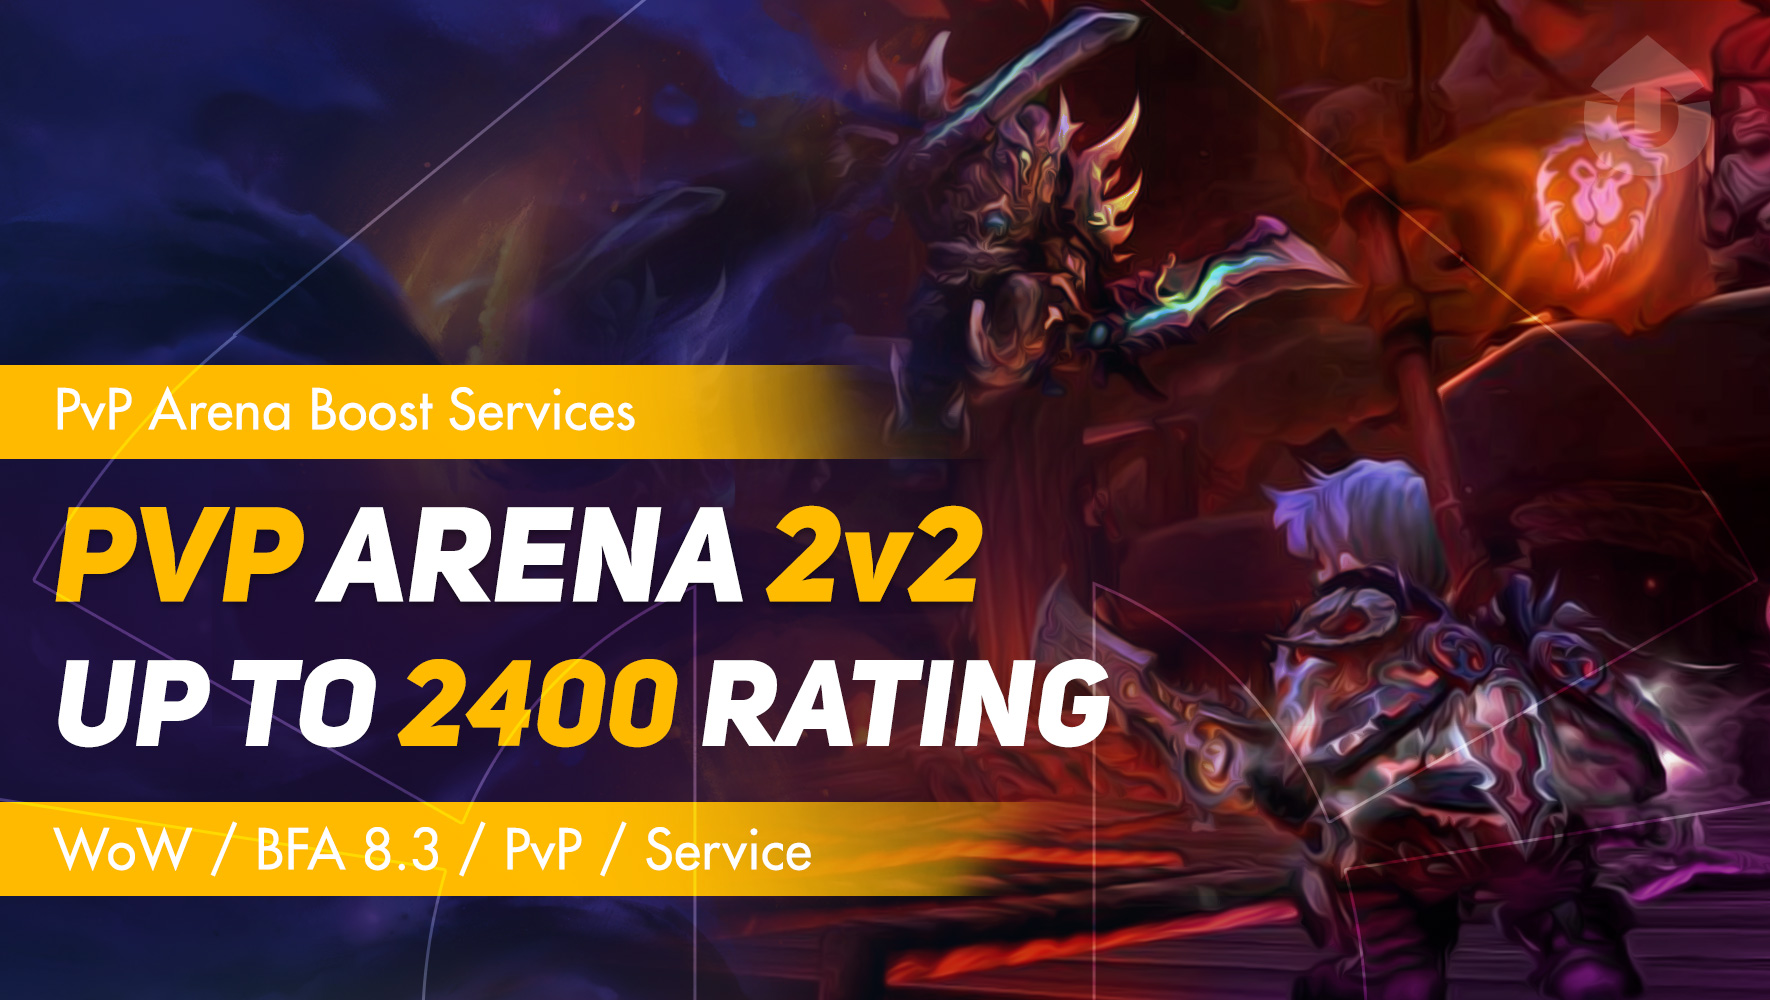 WoW PvP Arena 2v2 Rating Boost up to 2400